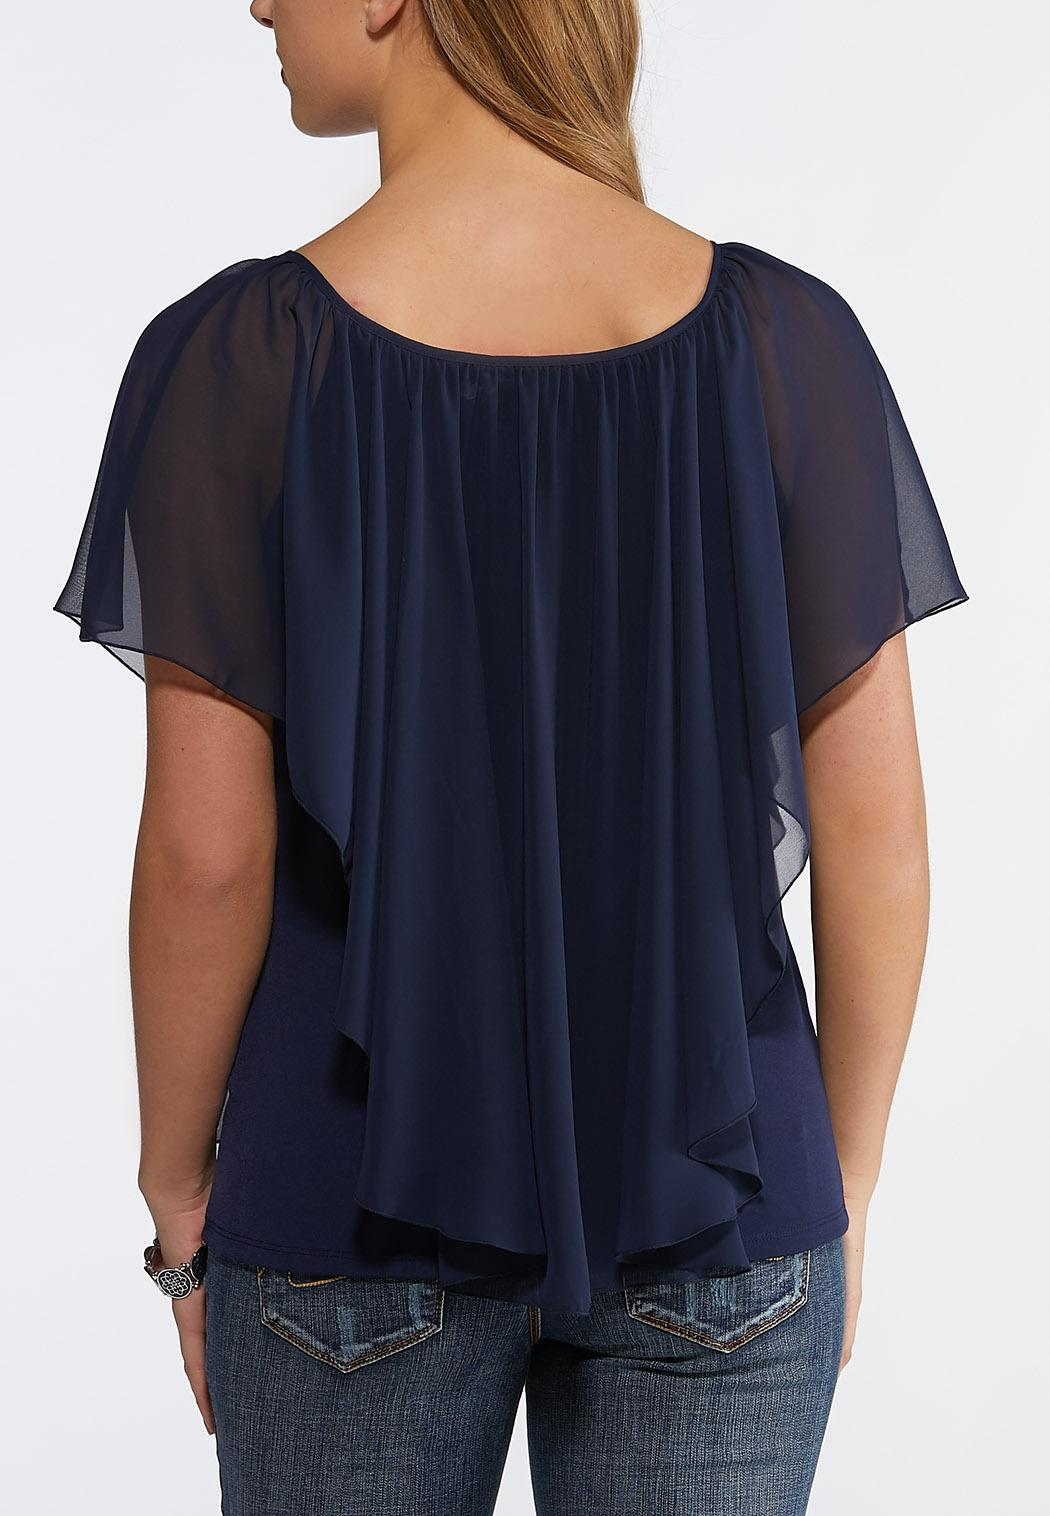 Plus Size Sheer Layered Capelet Top (Item #43791036)